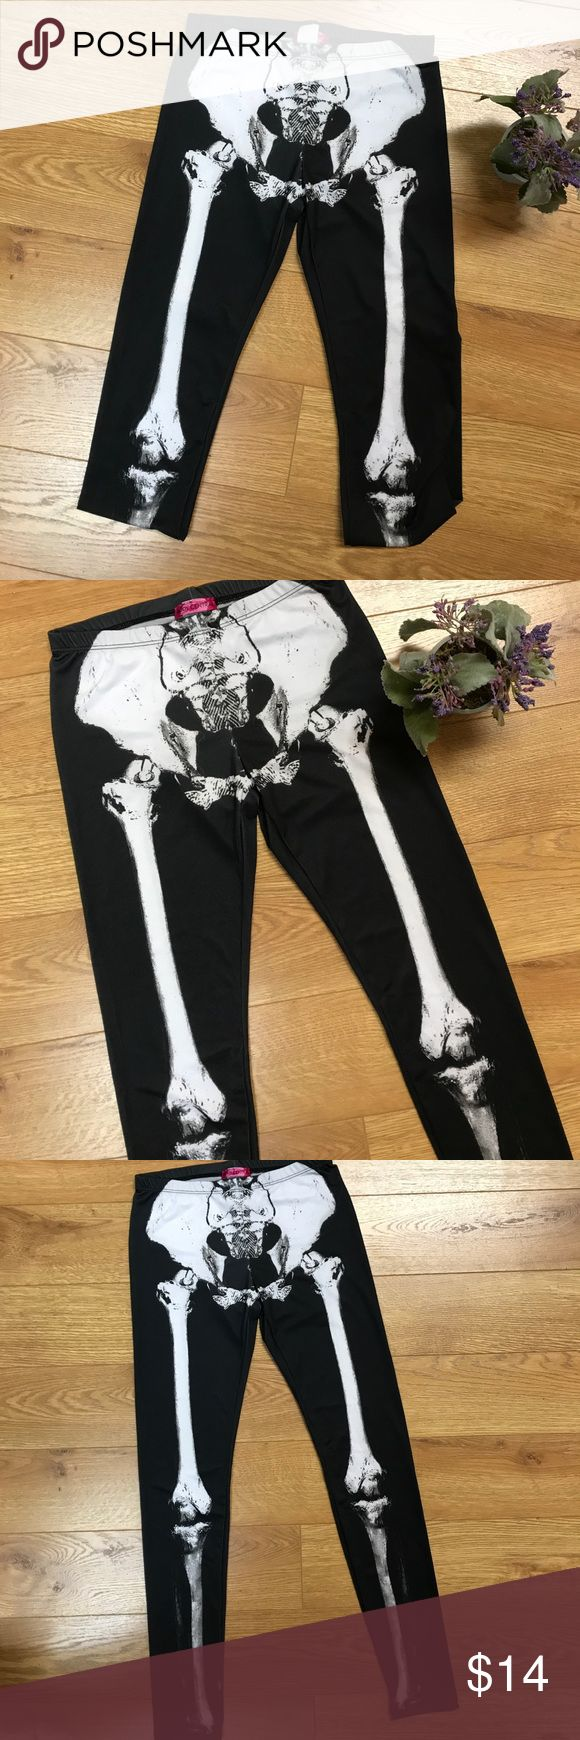 🆕 Skeleton Leggings NWOT Skeleton Leggings size small. These are a little bit sheer...meaning they run very true to size!! If you try to stretch too much they will become see-through. Awesome to layer over tights in cold weather or wear with anything! ✌🏼💛🌻 Body Central Pants Leggings